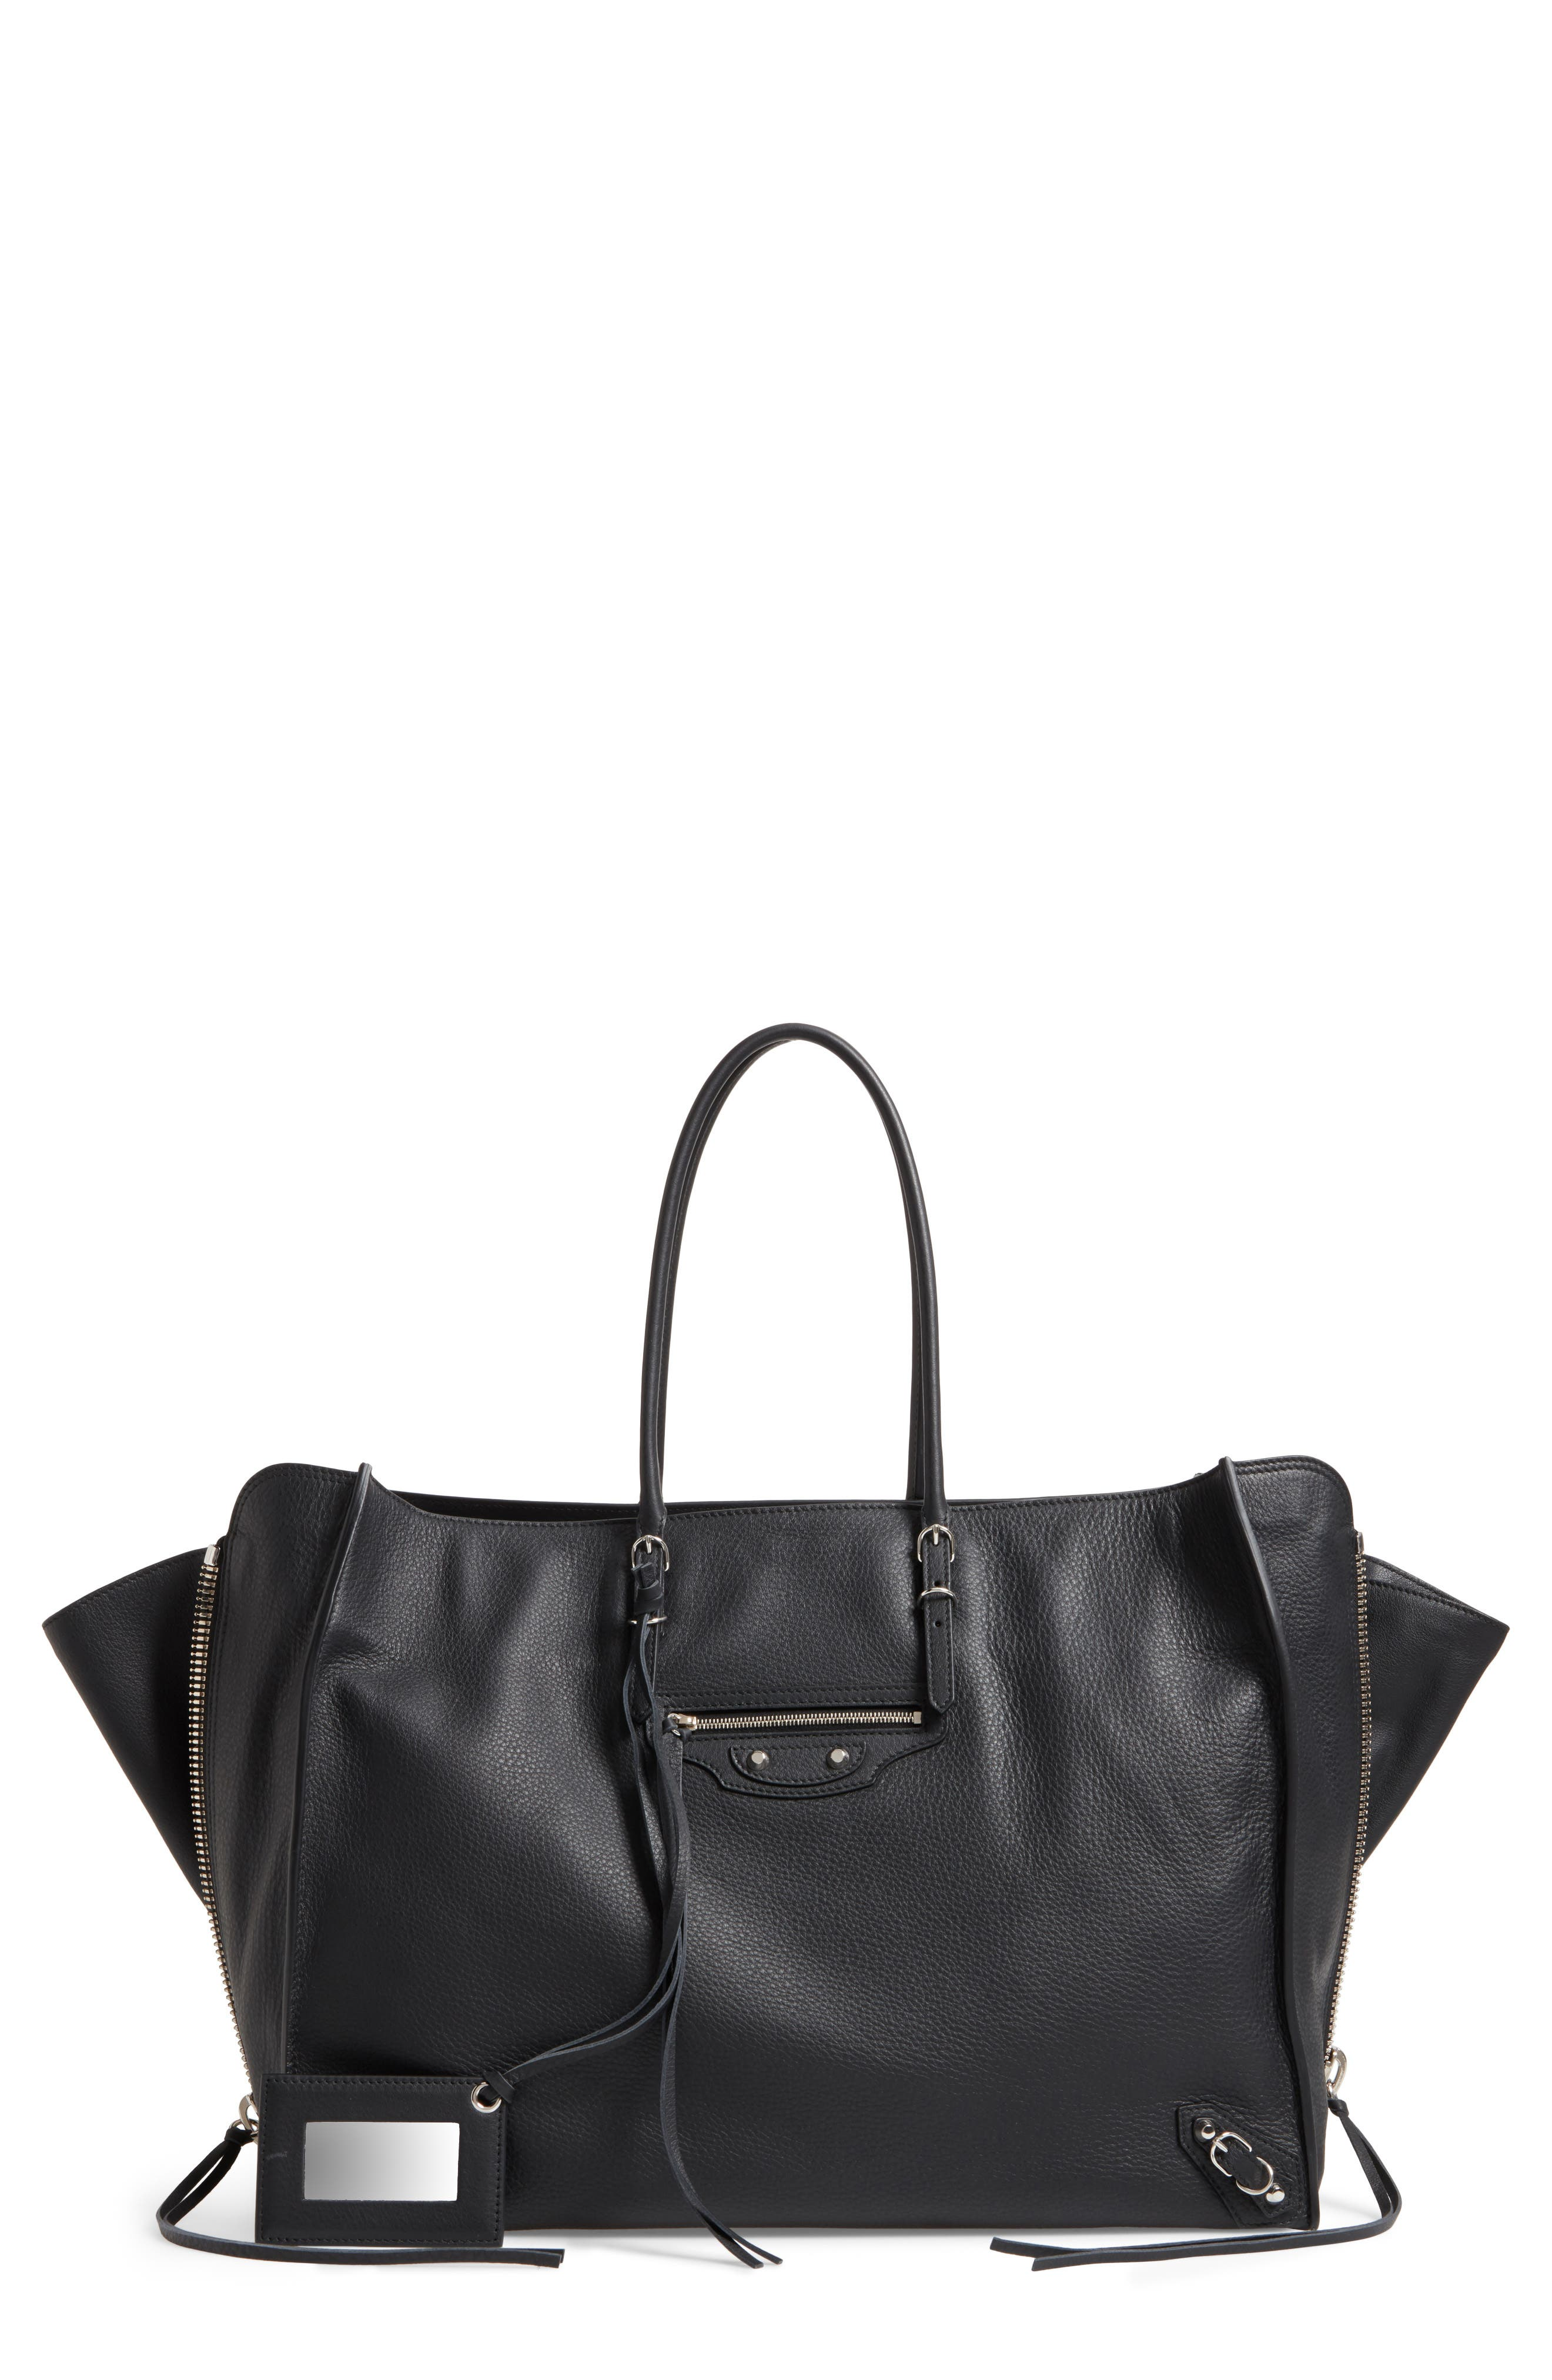 Papier A4 Zip Around Leather Tote, Main, color, 001